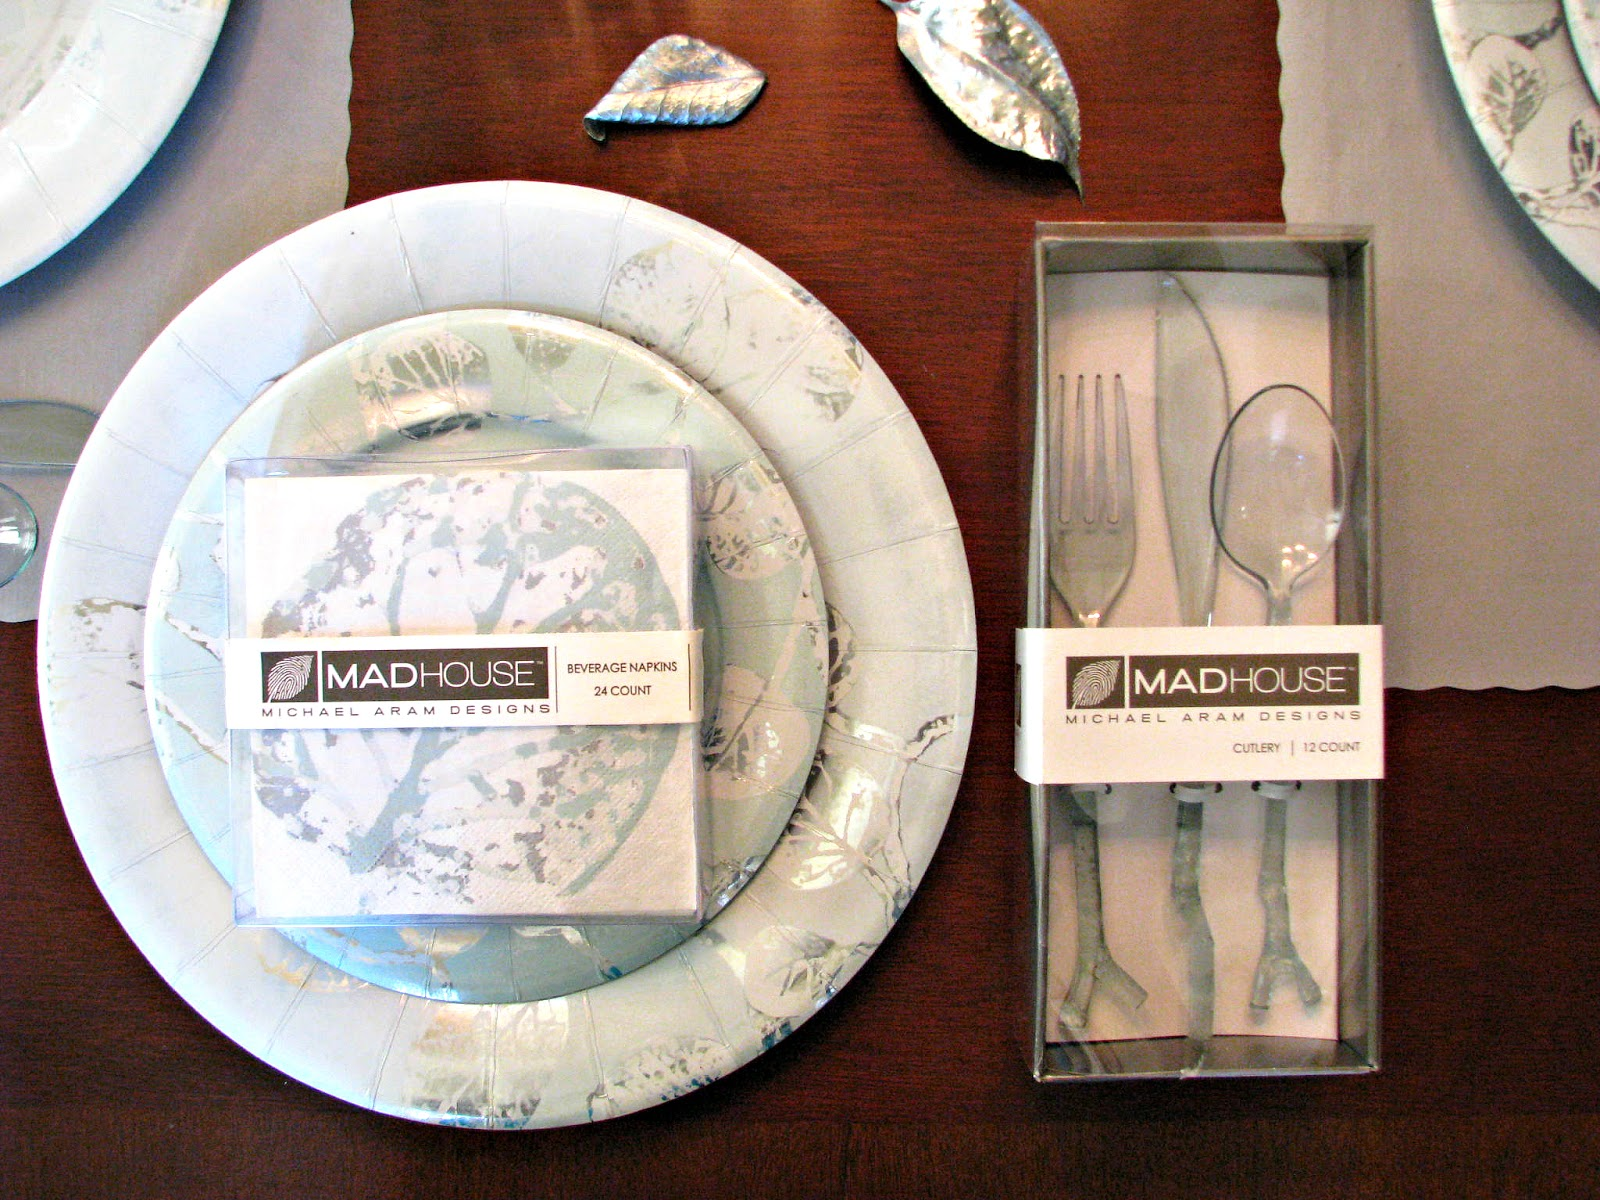 Silver and Teal Party Supplies with Twig Plastic Utensils